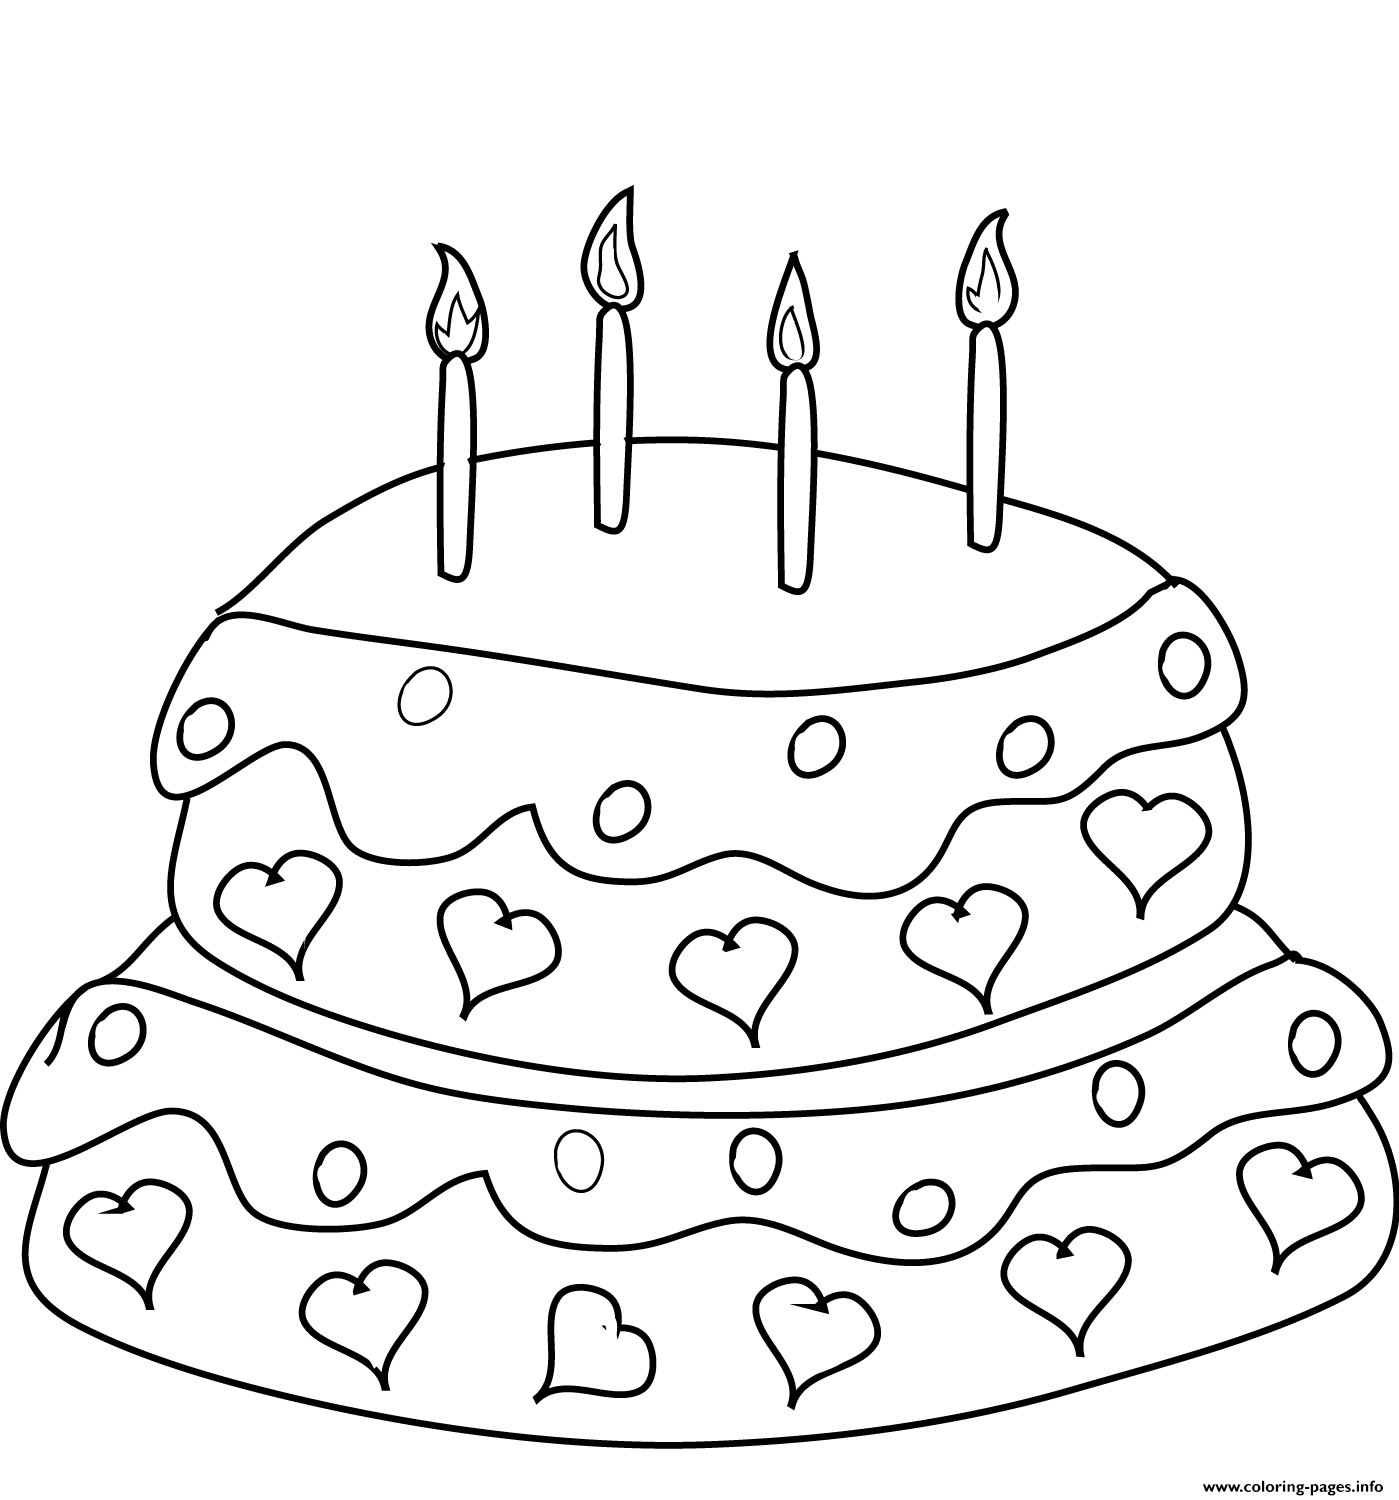 Birthday Cake With Four Candles Coloring Pages Printable